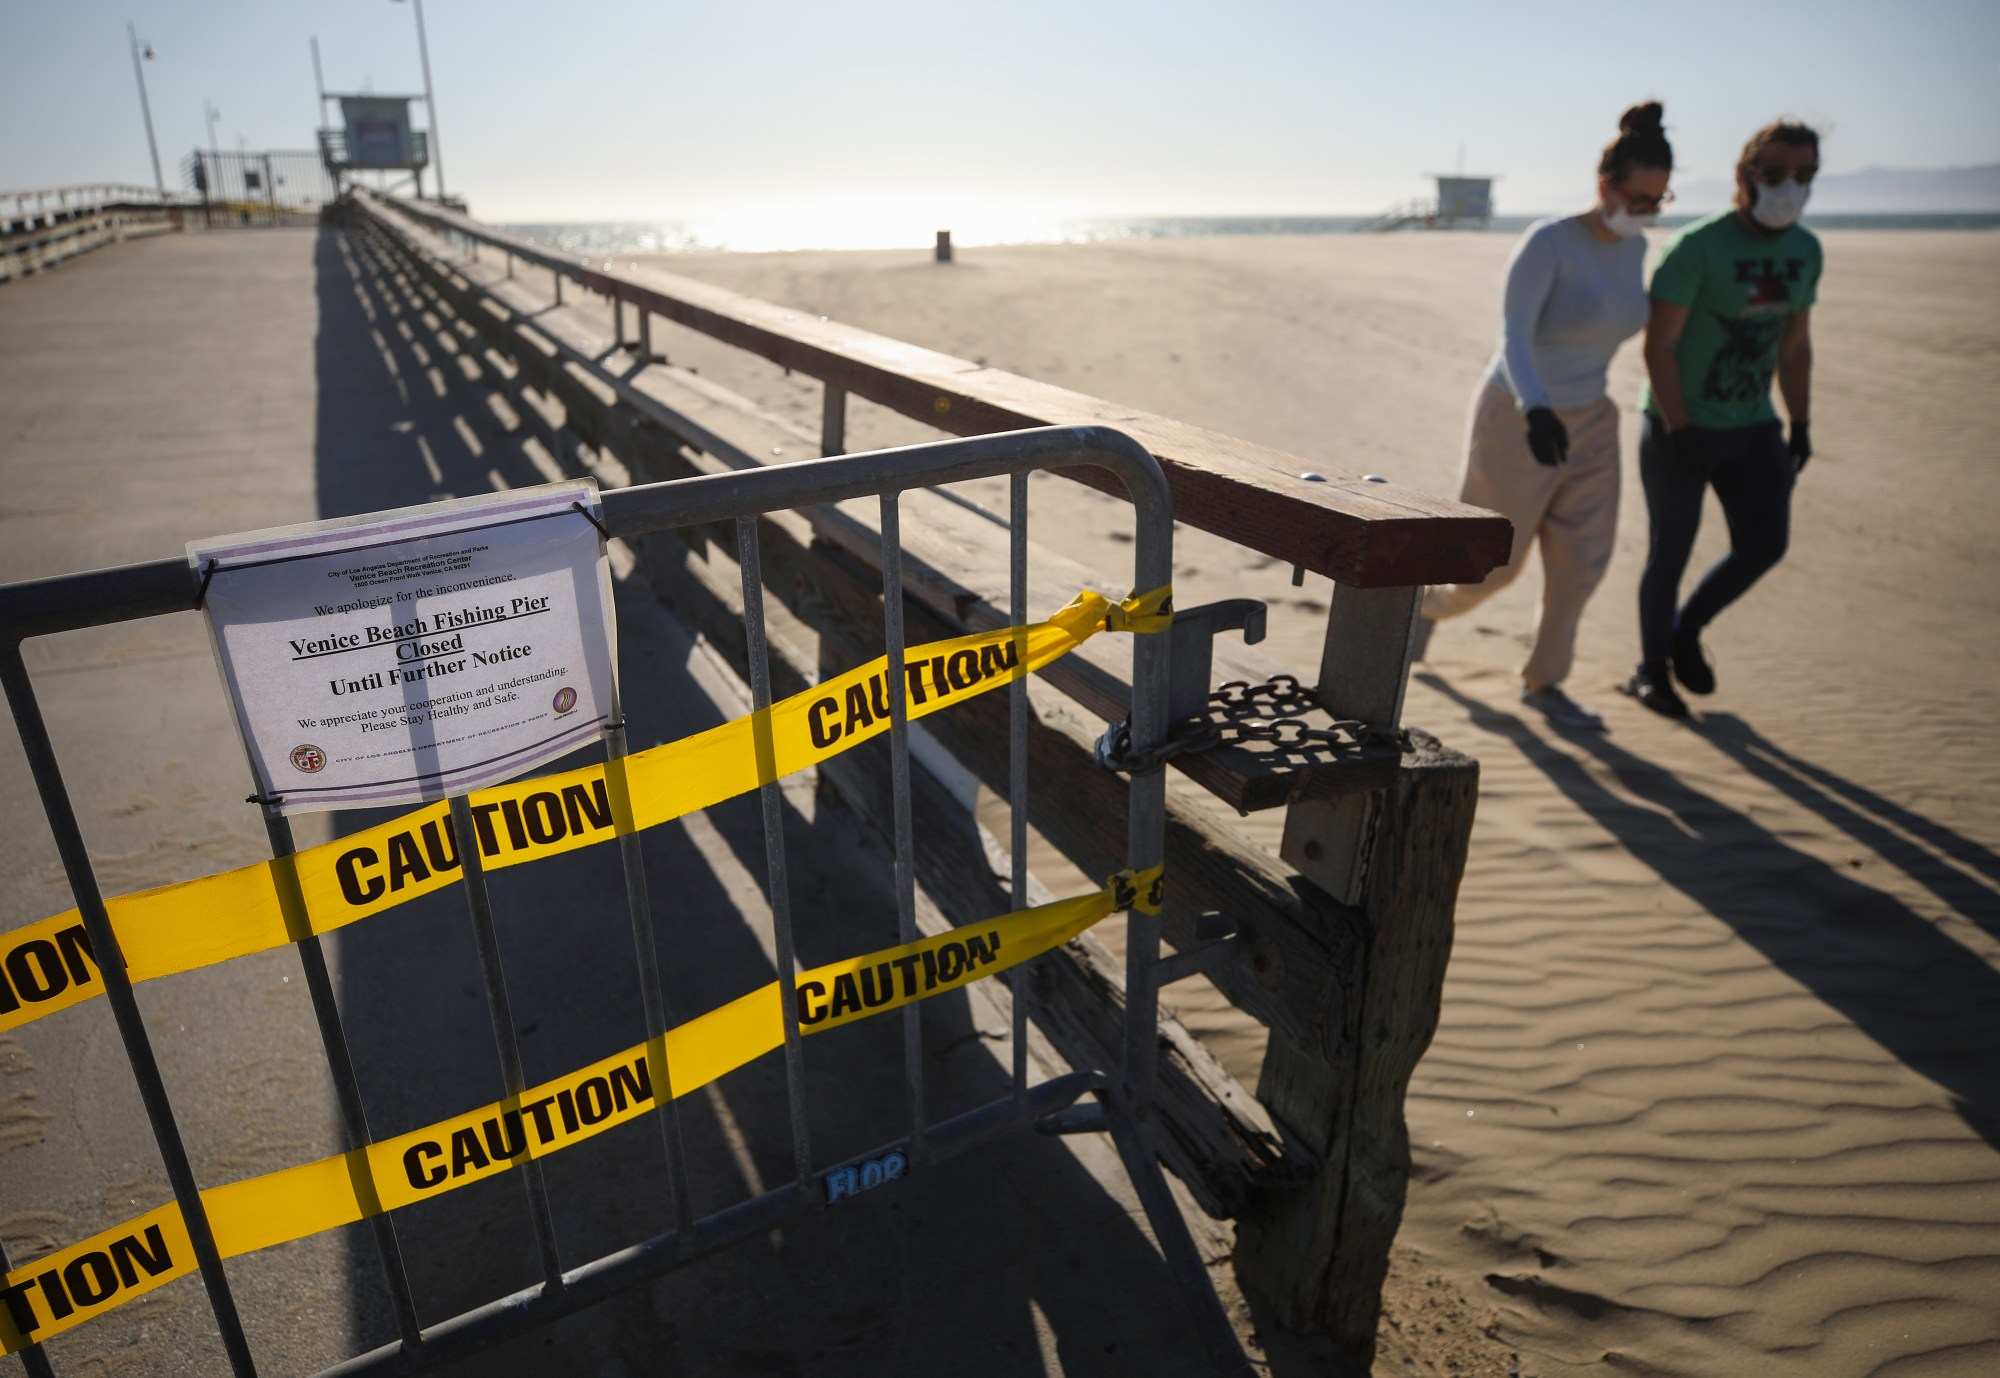 A barricade blocks the closed pier at Venice Beach as people walk past wearing face masks amid the coronavirus pandemic on March 27, 2020, in Venice, Calif. Los Angeles County closed all beaches that day as a measure to stem the spread of COVID-19. (Mario Tama/Getty Images)